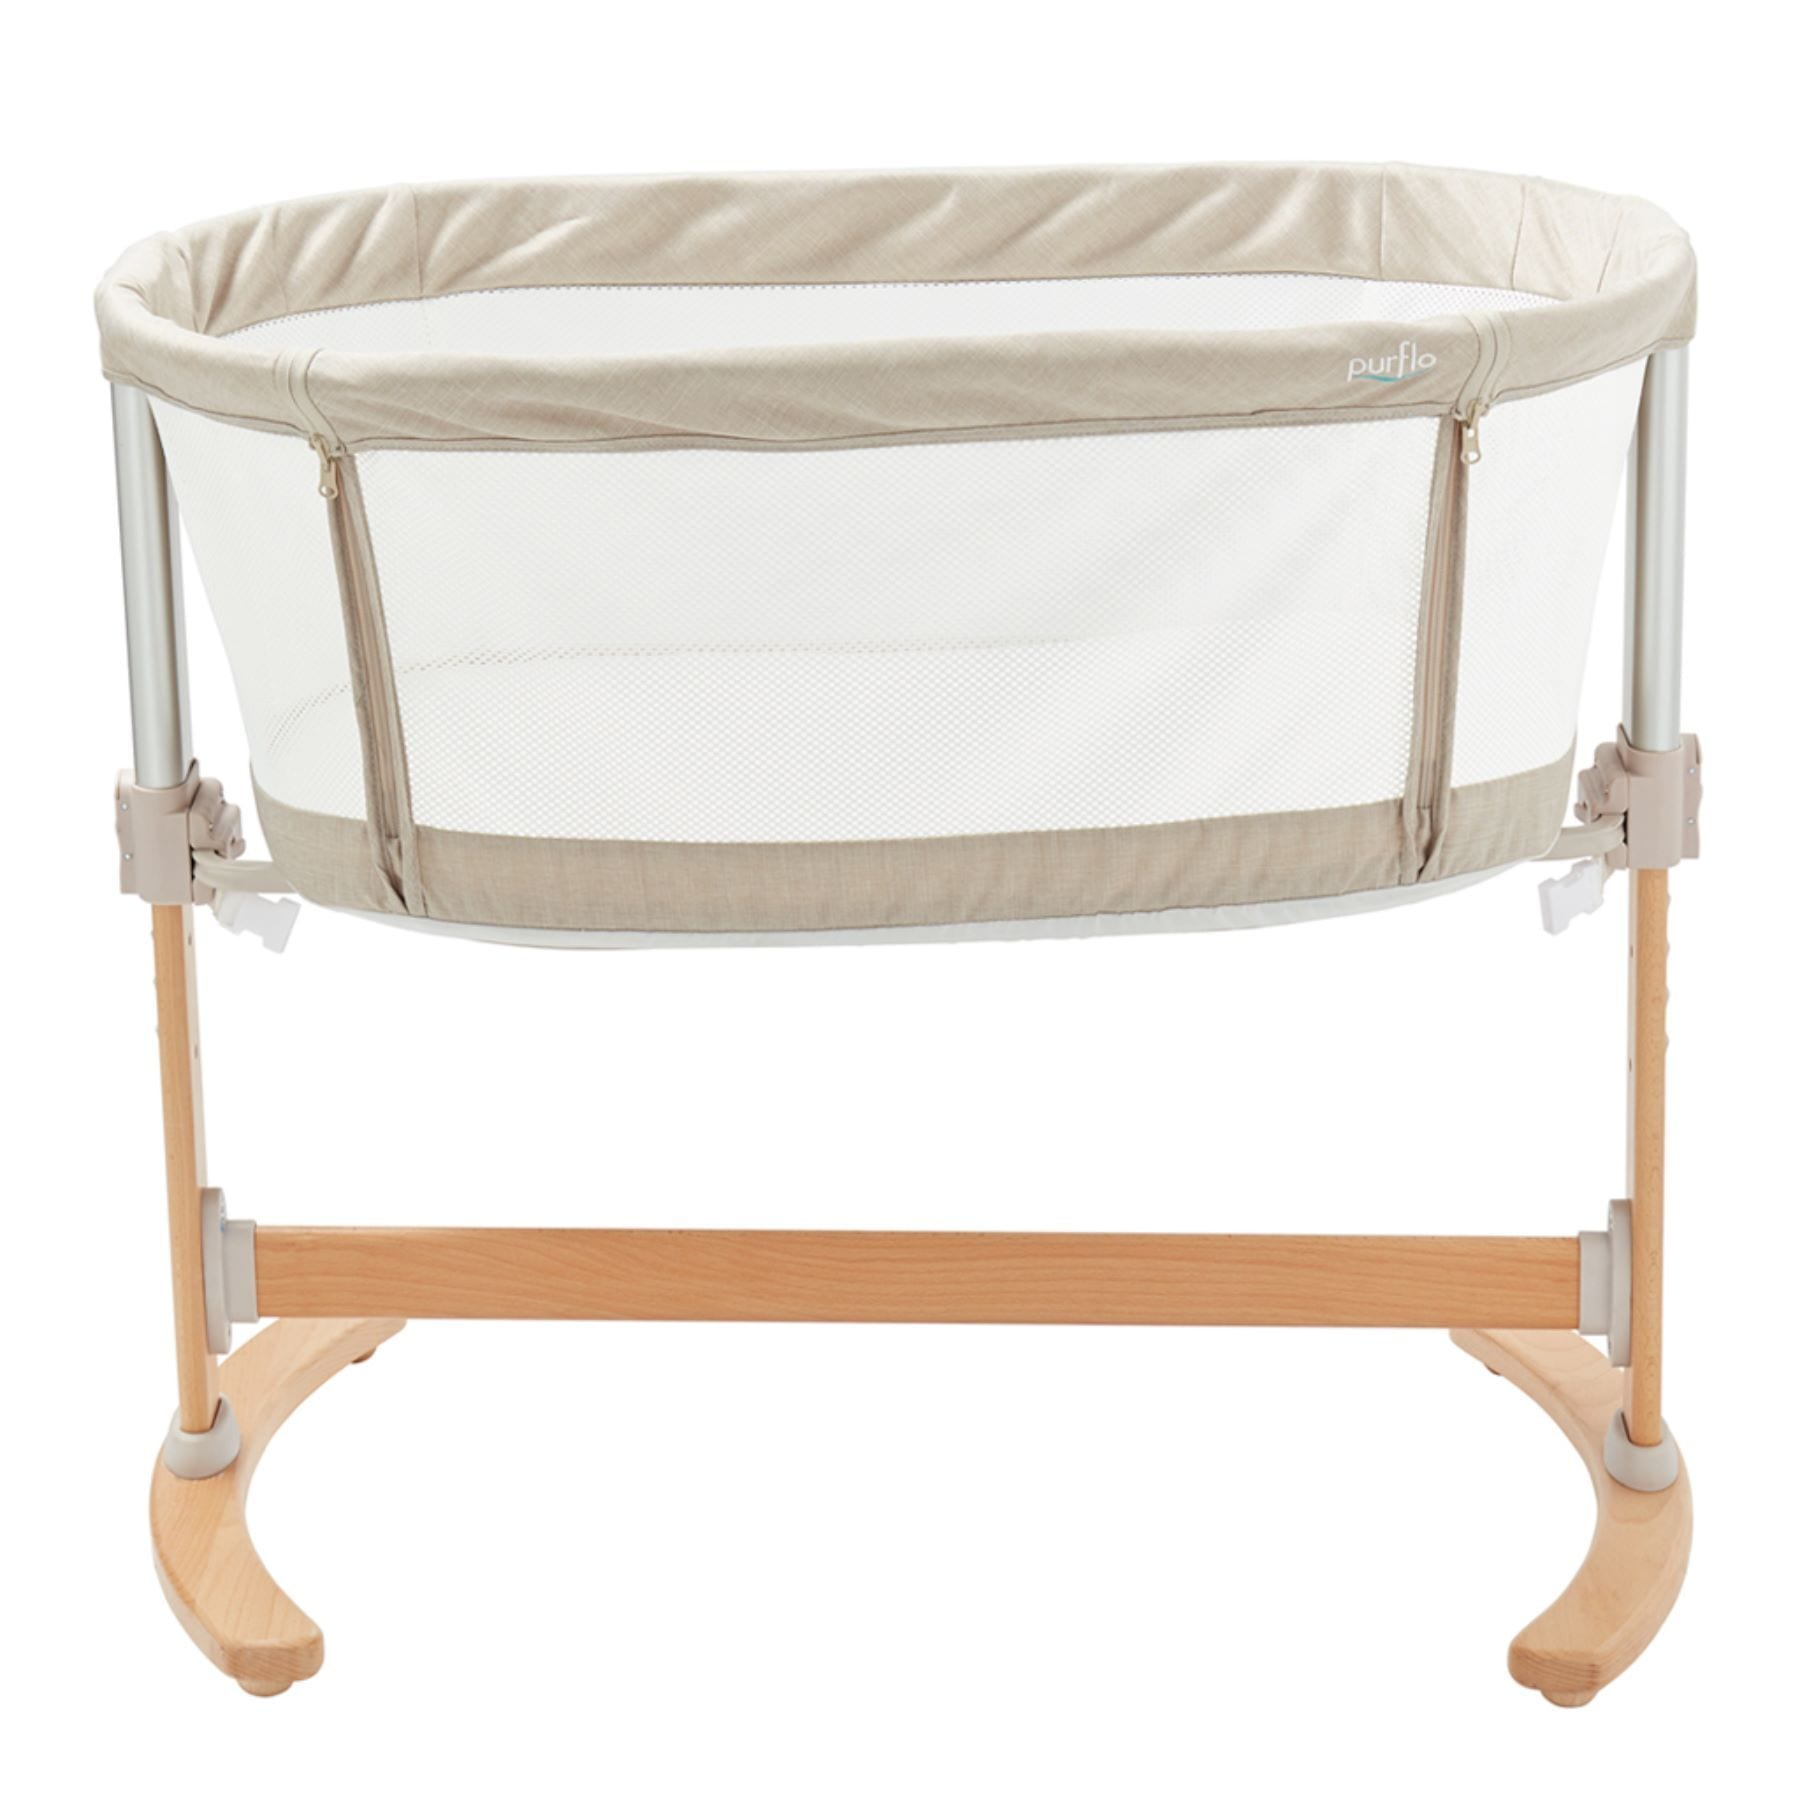 Purflo Breathable Bedside Crib - Natural